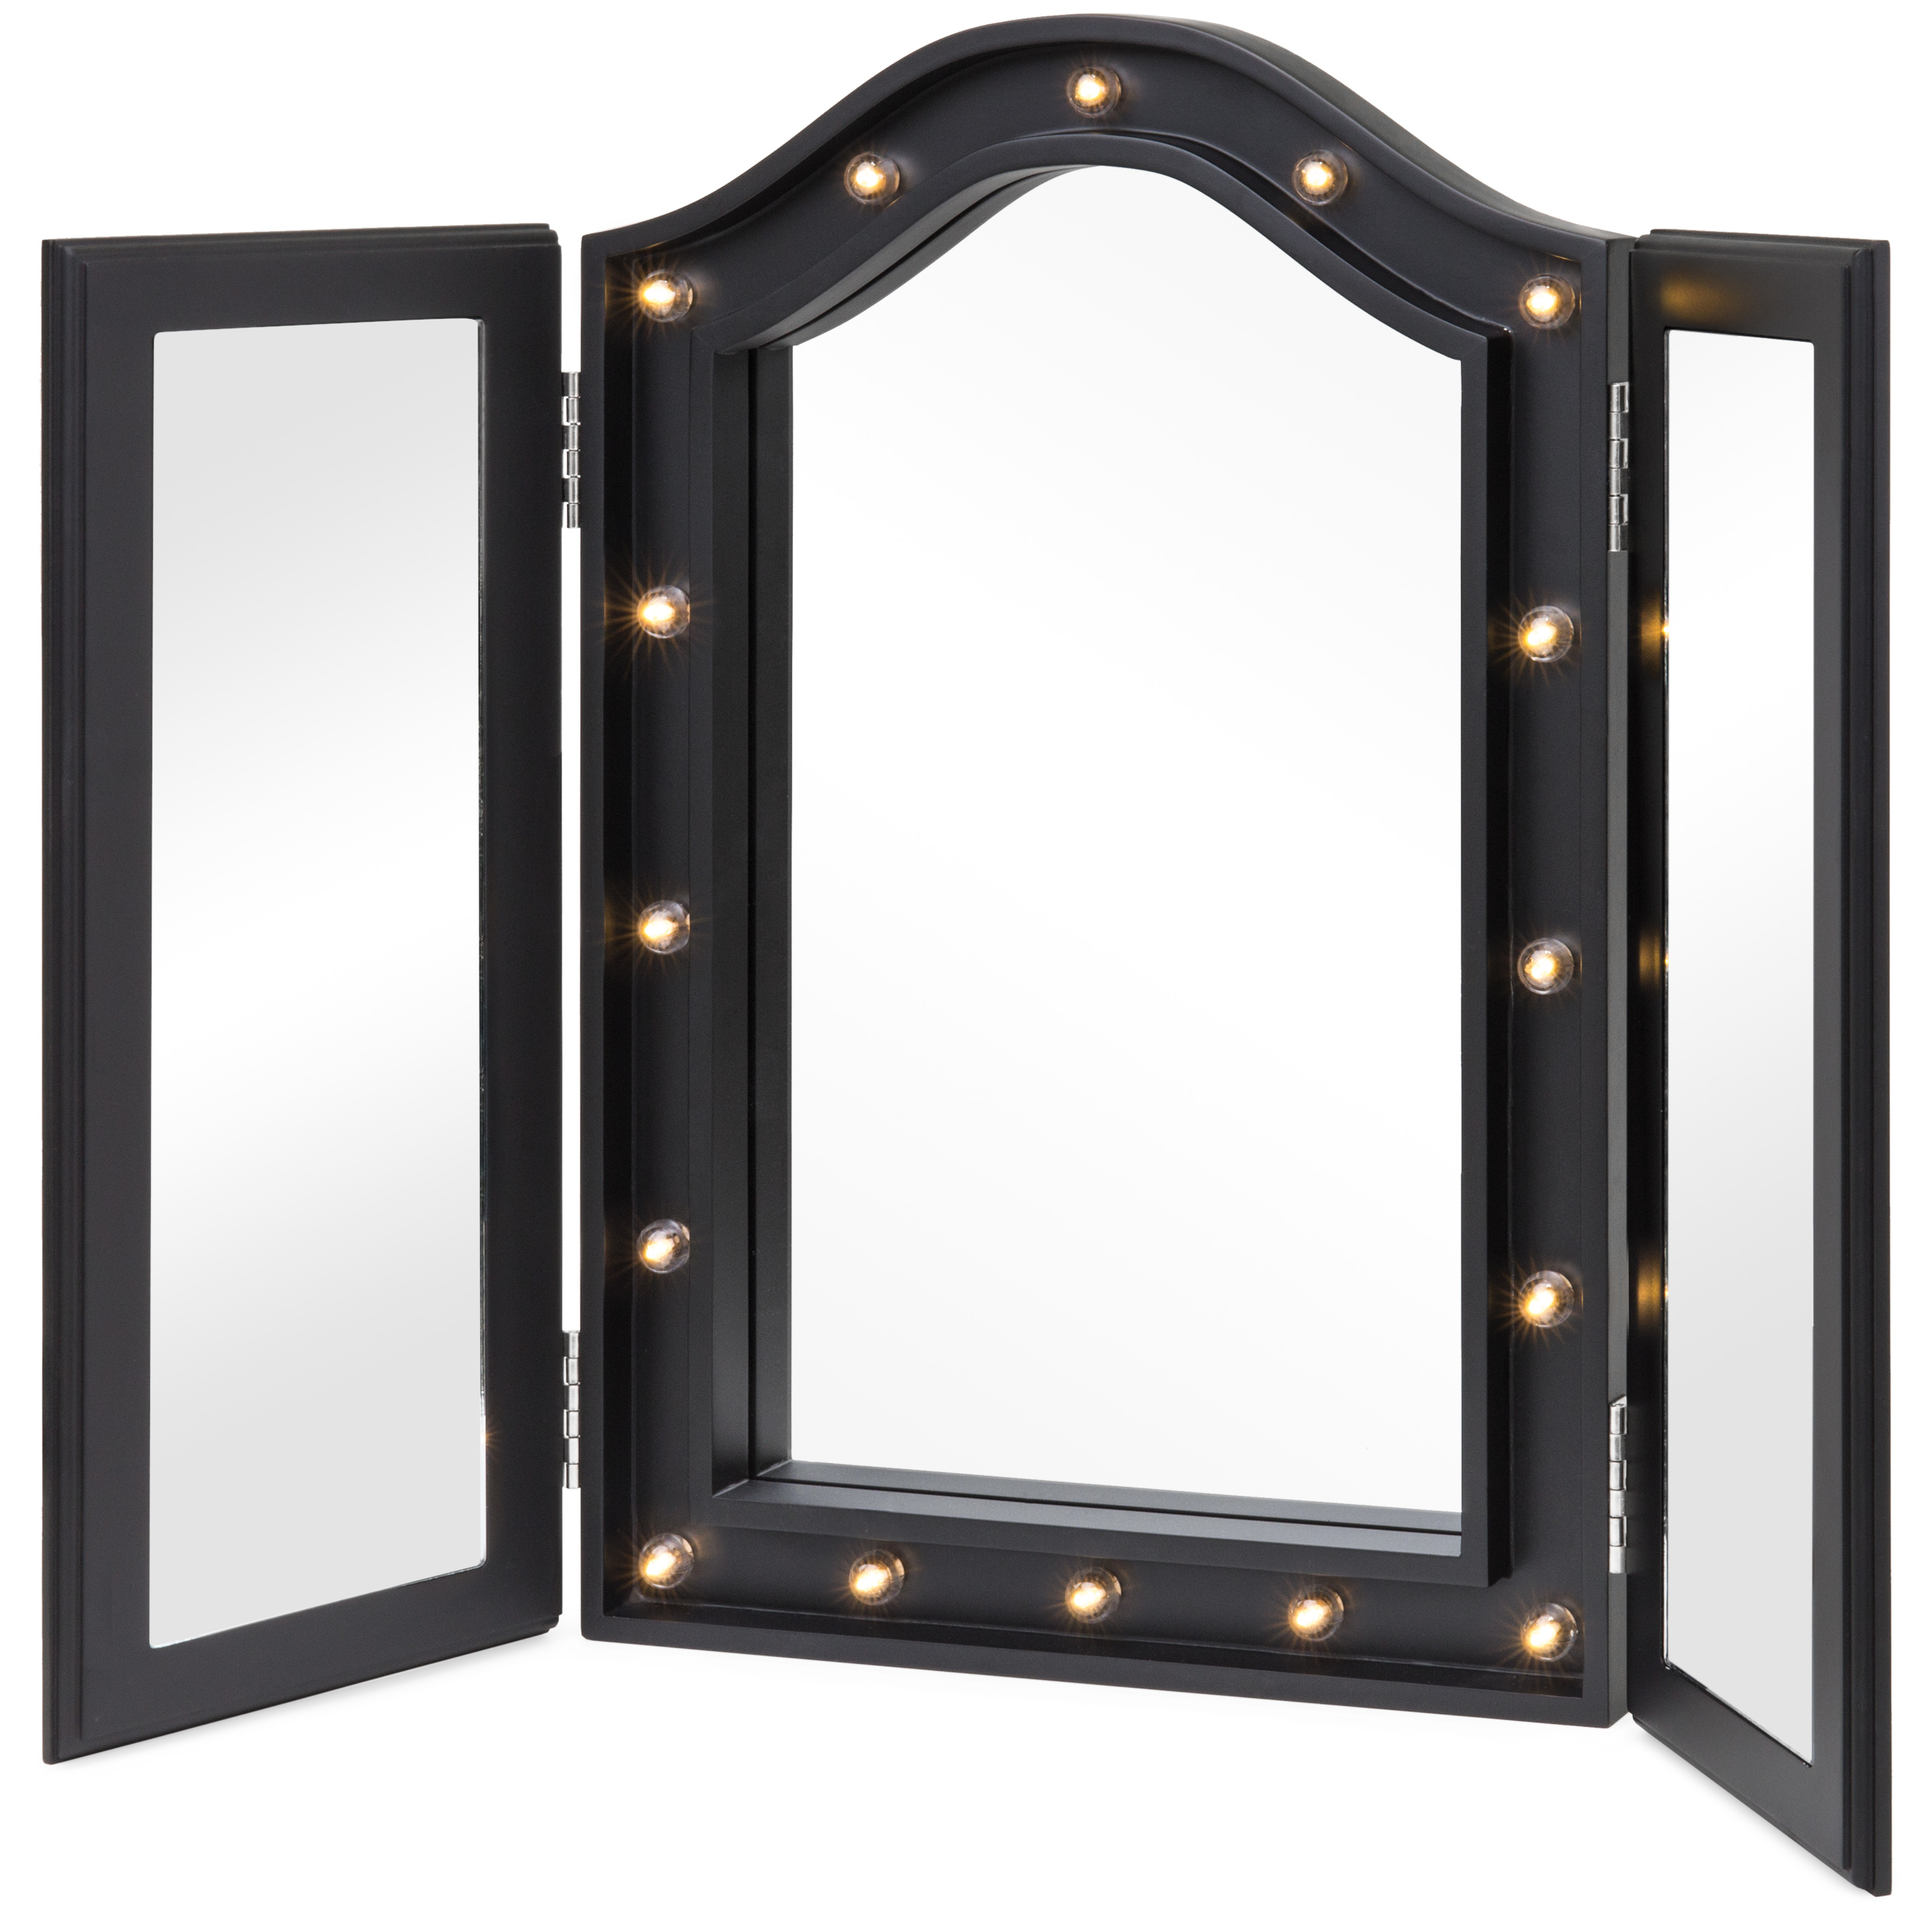 Best Choice Products Lit Tabletop Tri-Fold Vanity Mirror w  LED Lights (Black) by Best Choice Products